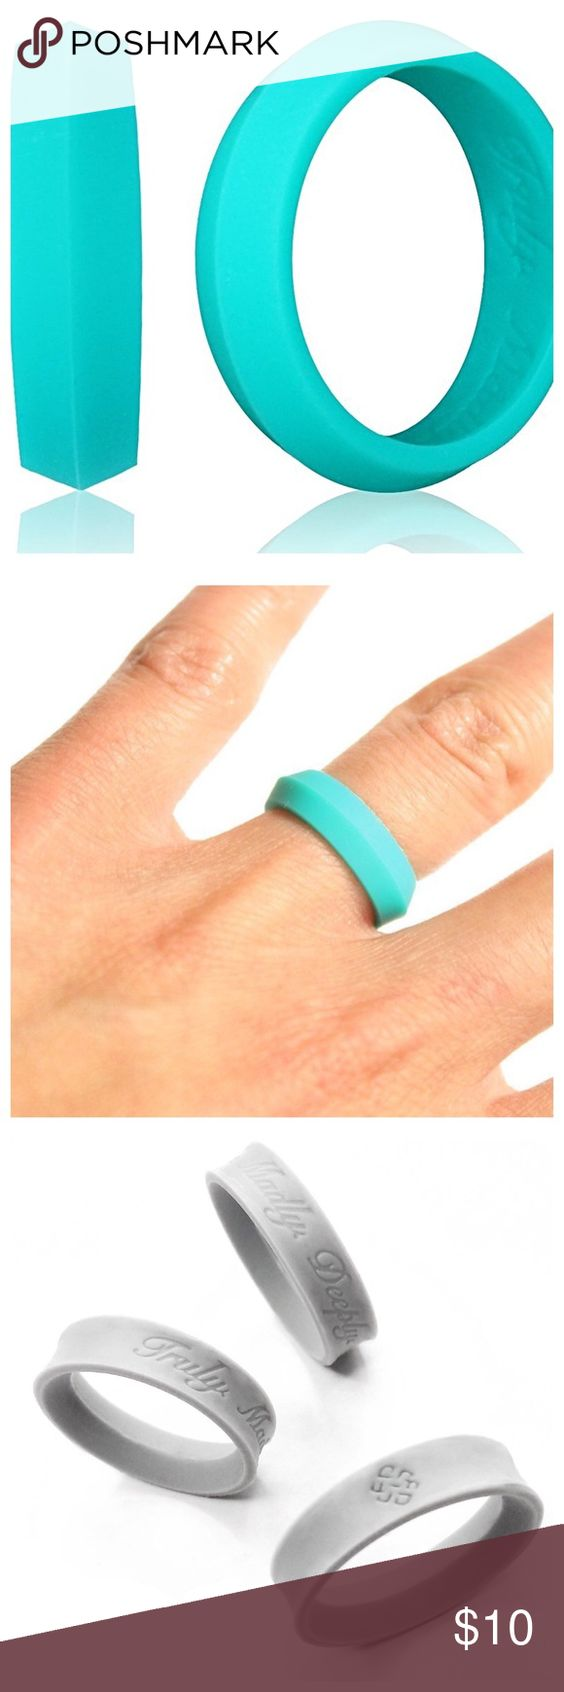 workout wedding rings TURQUOISE 5mm SZ 6 SILICONE WORKOUT WEDDING RING Knot Theory Silicone Wedding Ring for Women